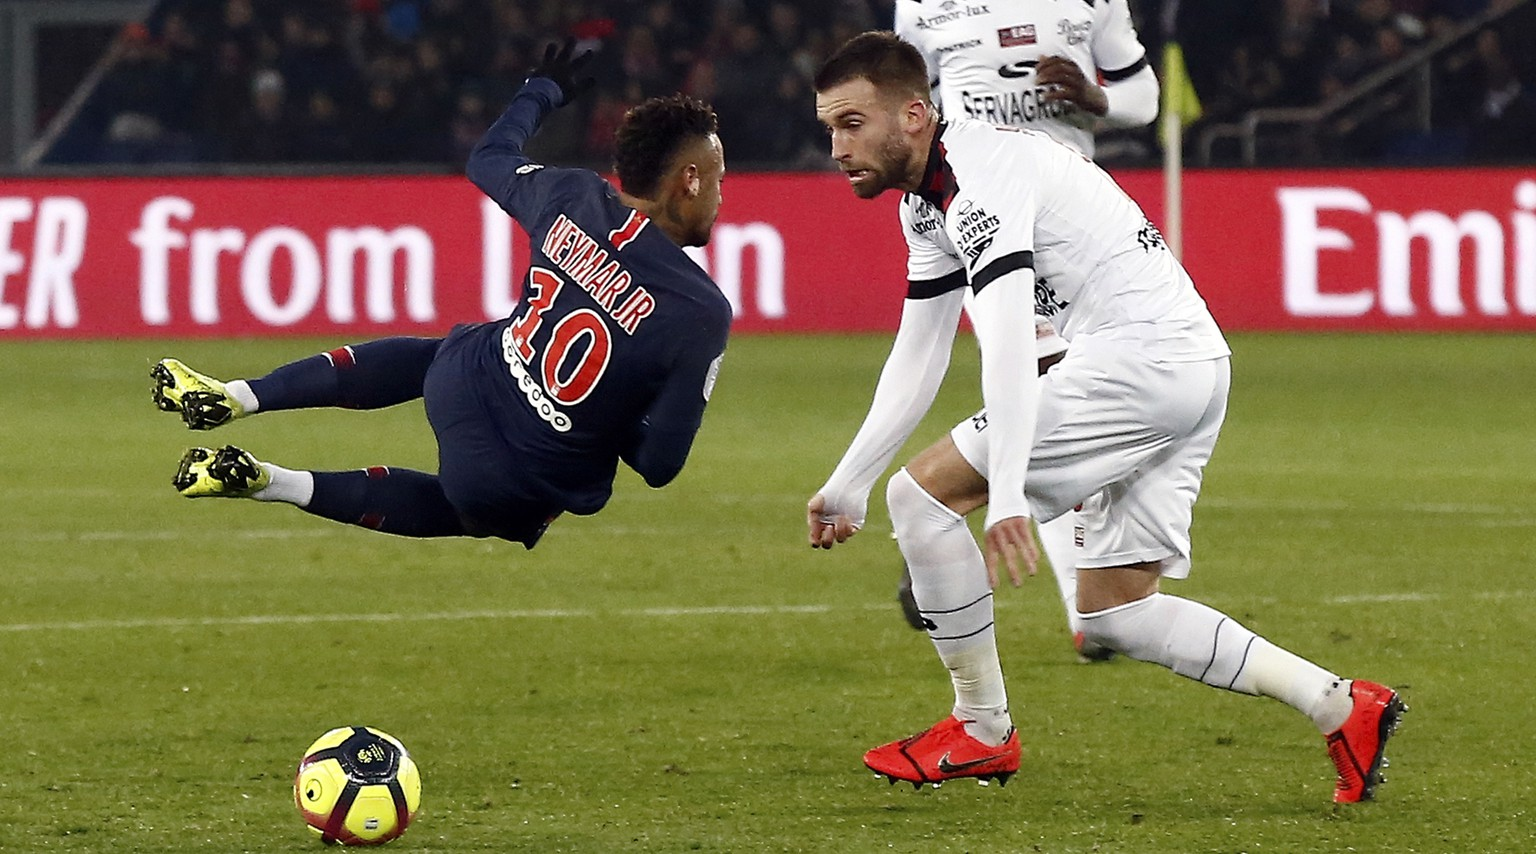 PSG's Neymar, left, is fouled by Guingamp's Lucas Deaux during the League One soccer match between Paris Saint Germain and Guingamp at the Parc des Princes stadium in Paris, Saturday, Jan. 19, 2019. (AP Photo/Michel Euler)